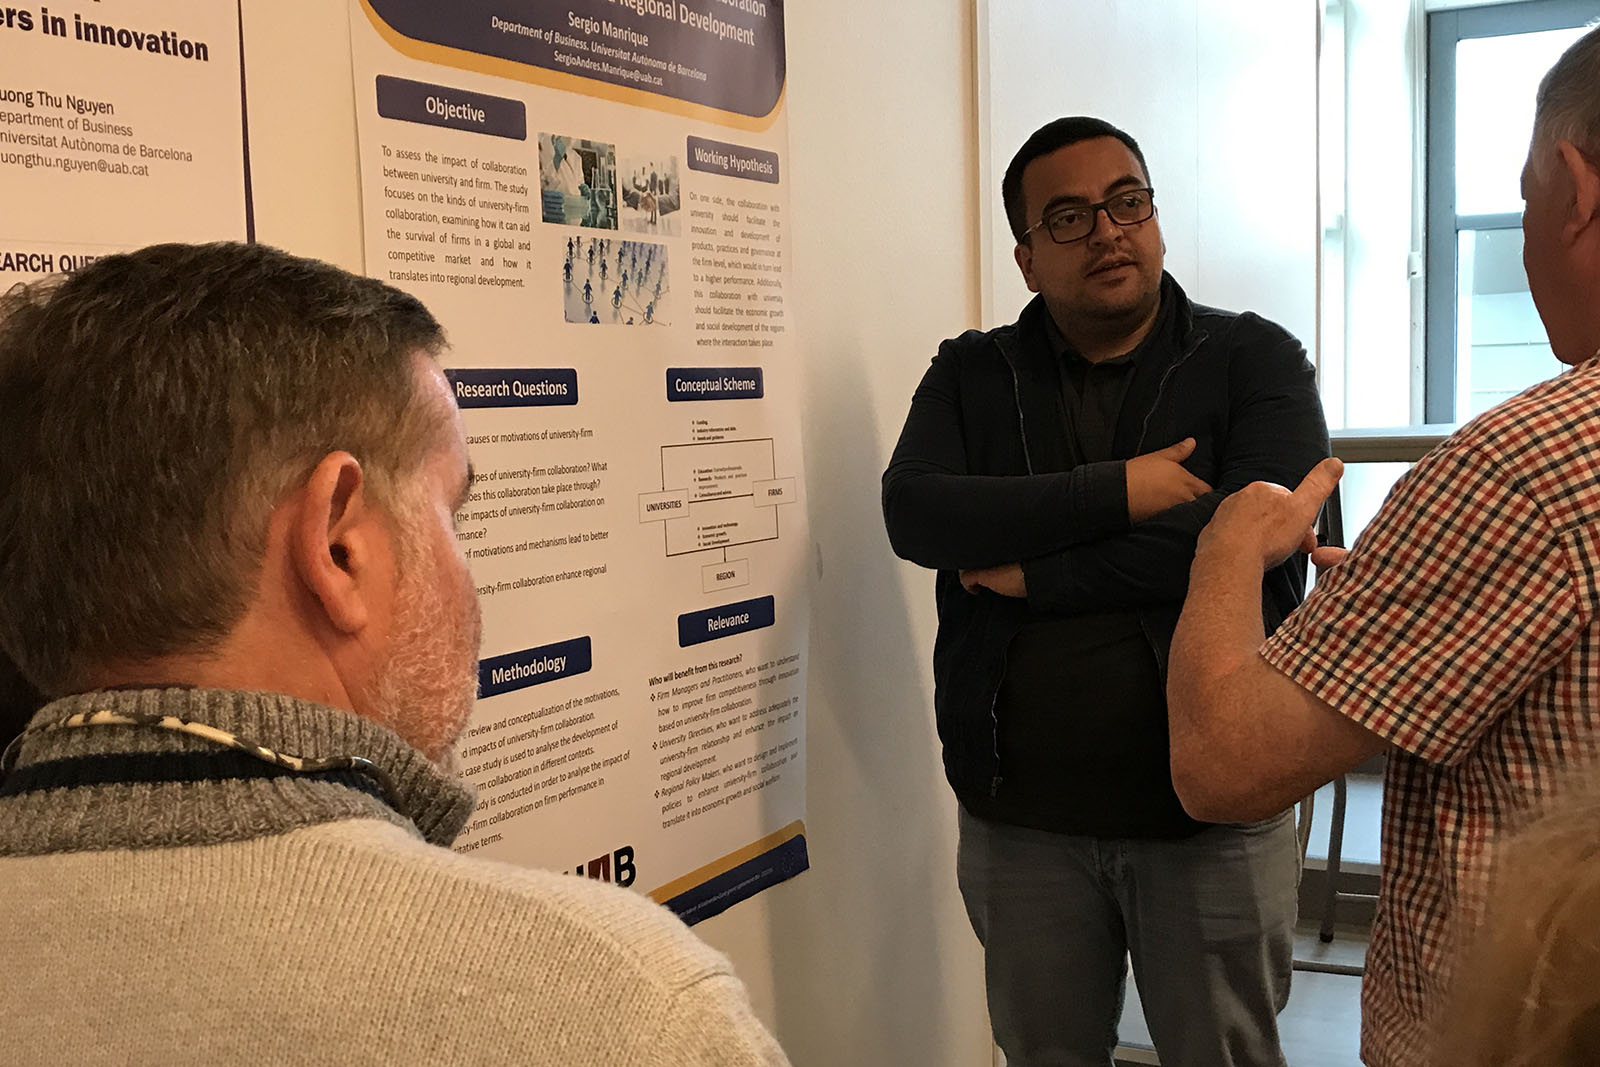 Sergio discussing his research ideas with enganement session participant...